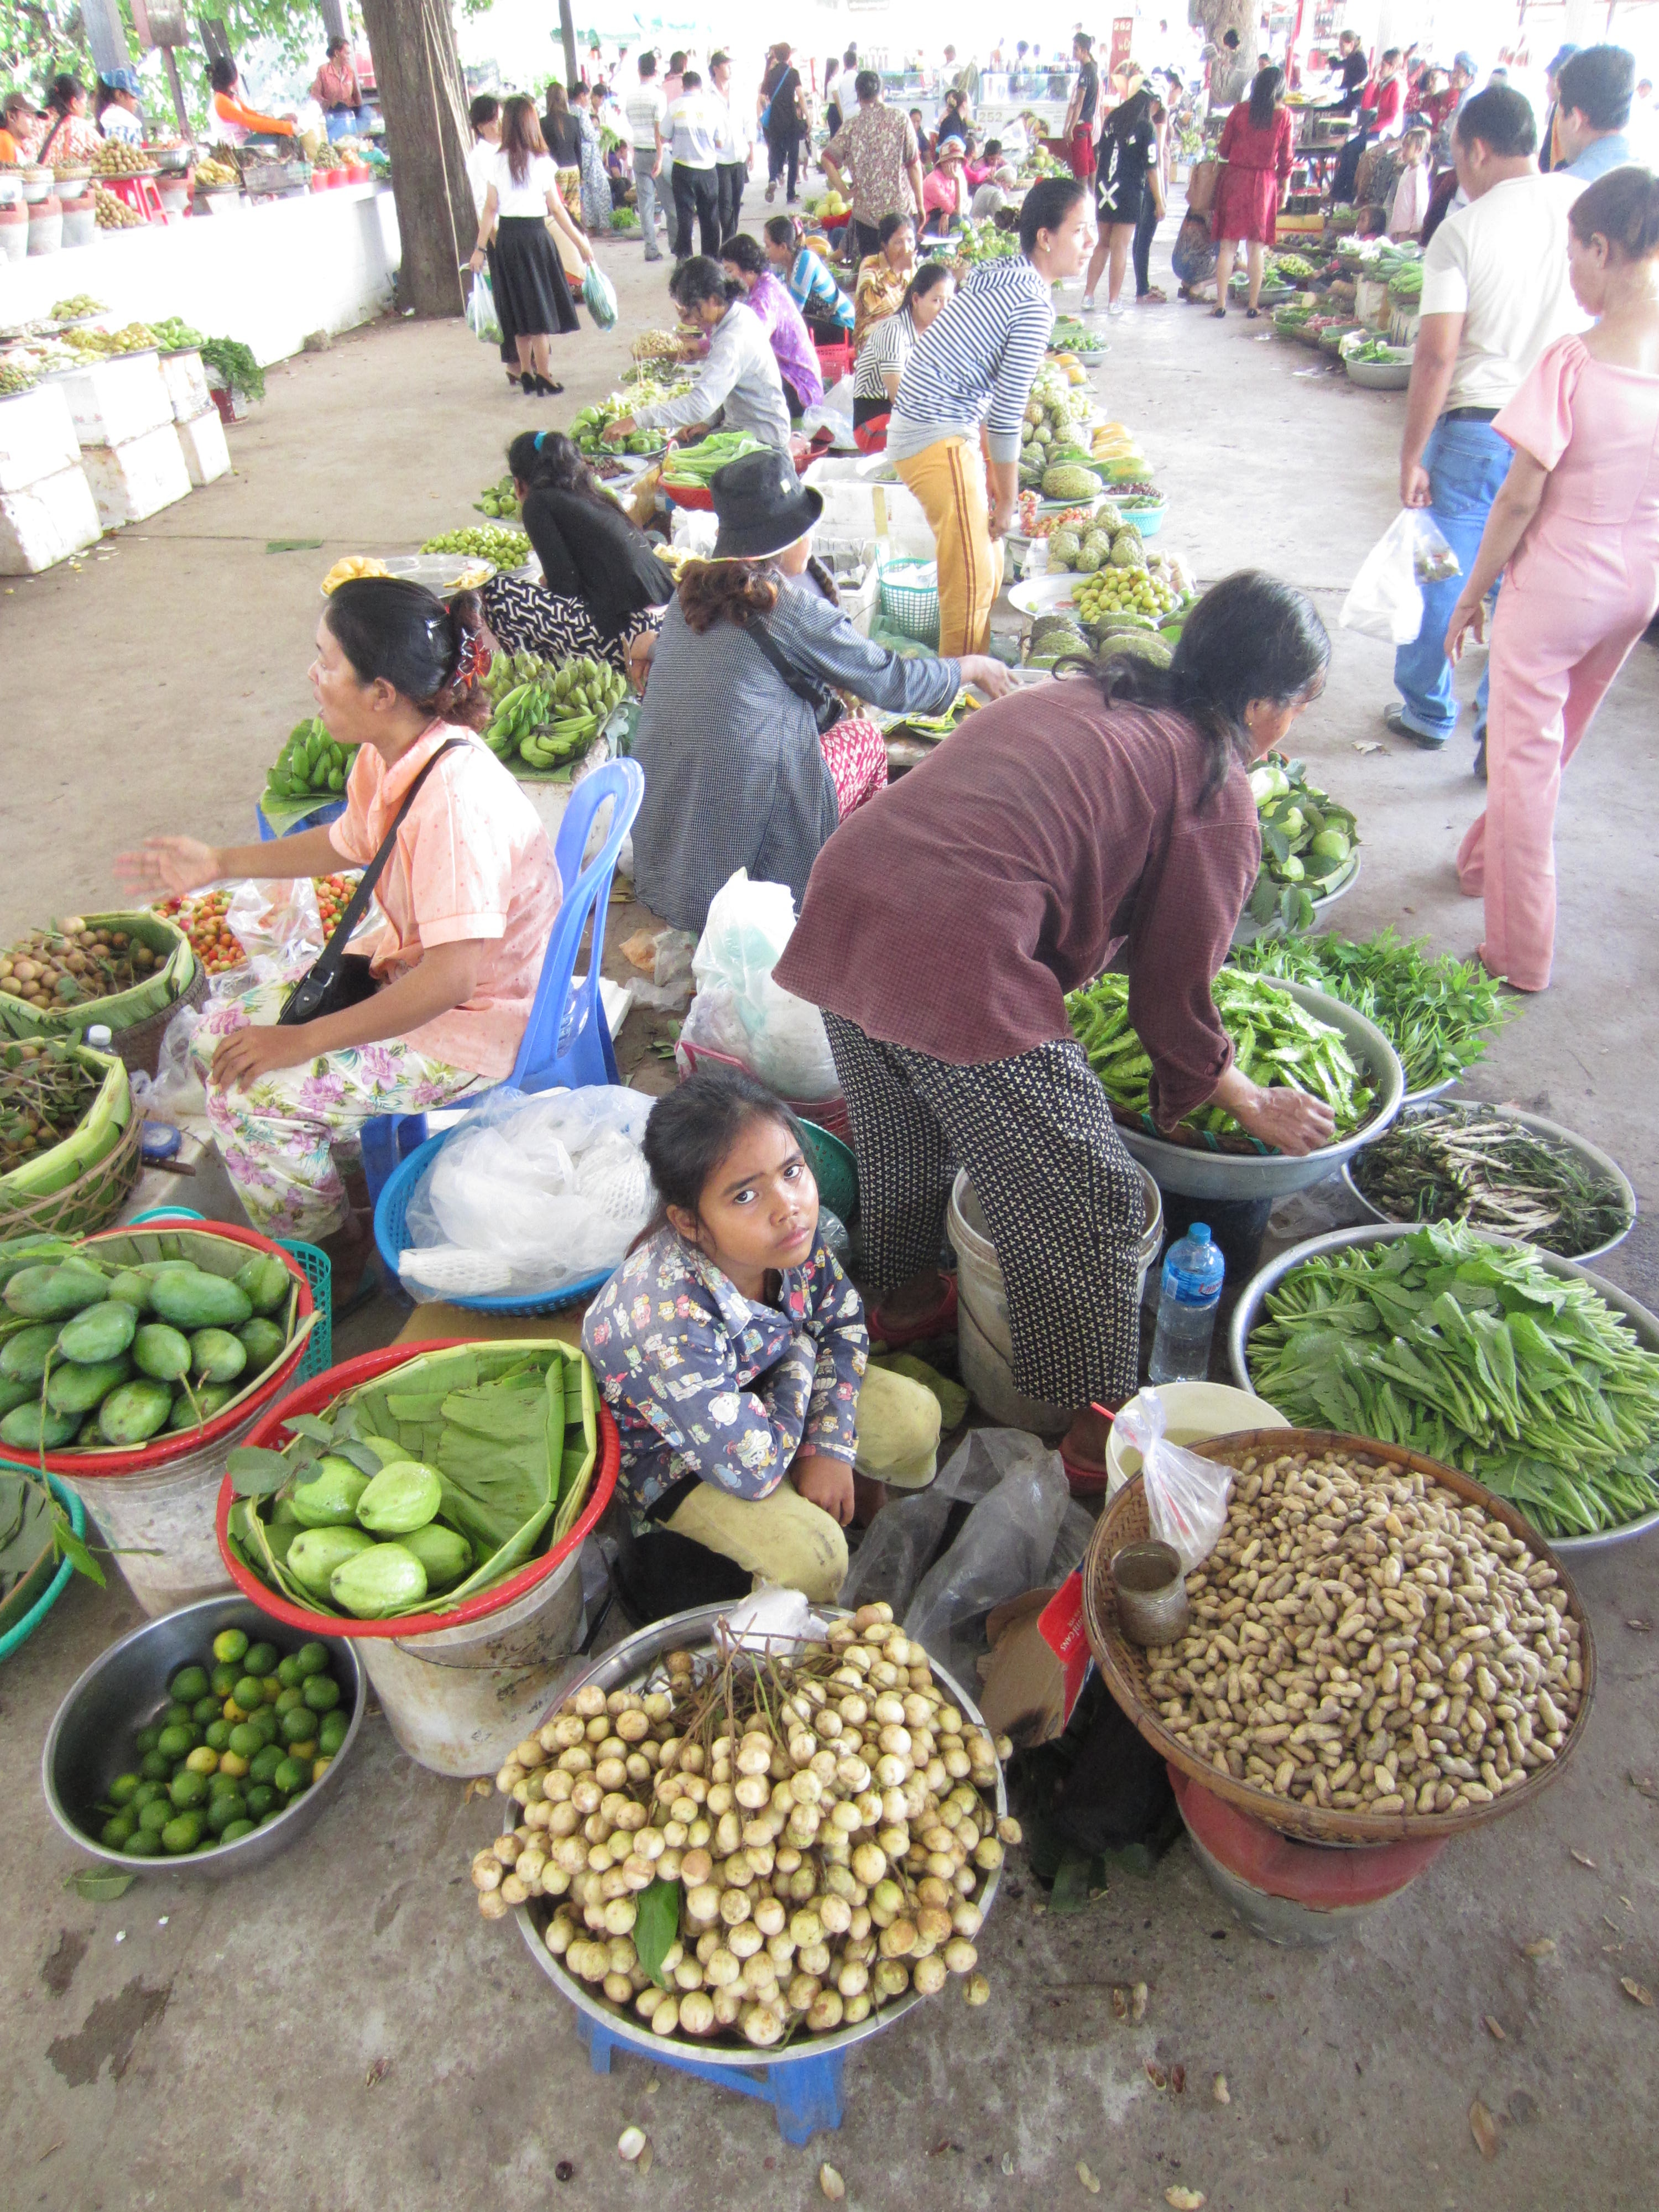 This is not my local market, but it is typical of markets found everywhere in Cambodia.